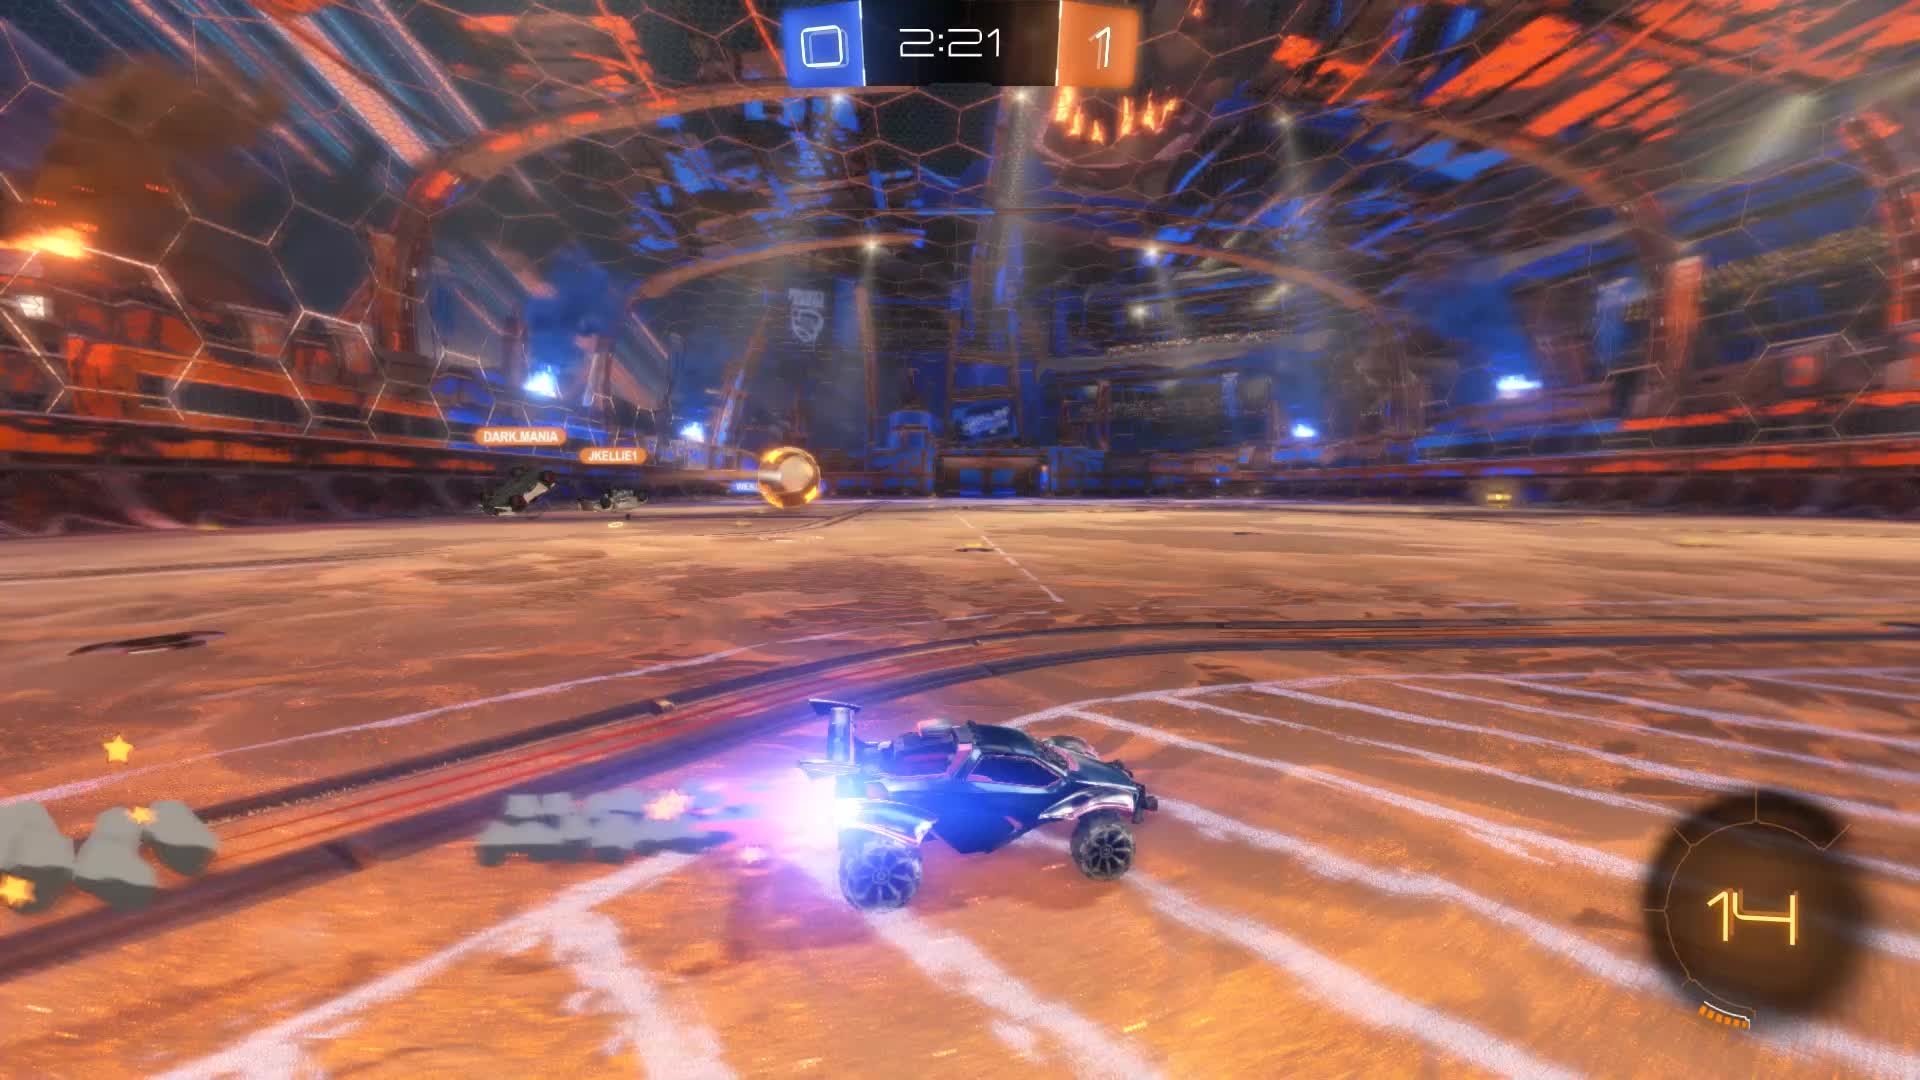 Gif Your Game, GifYourGame, Goal, Rocket League, RocketLeague, SCOTLAND FOREVER, Goal 2: SCOTLAND FOREVER GIFs